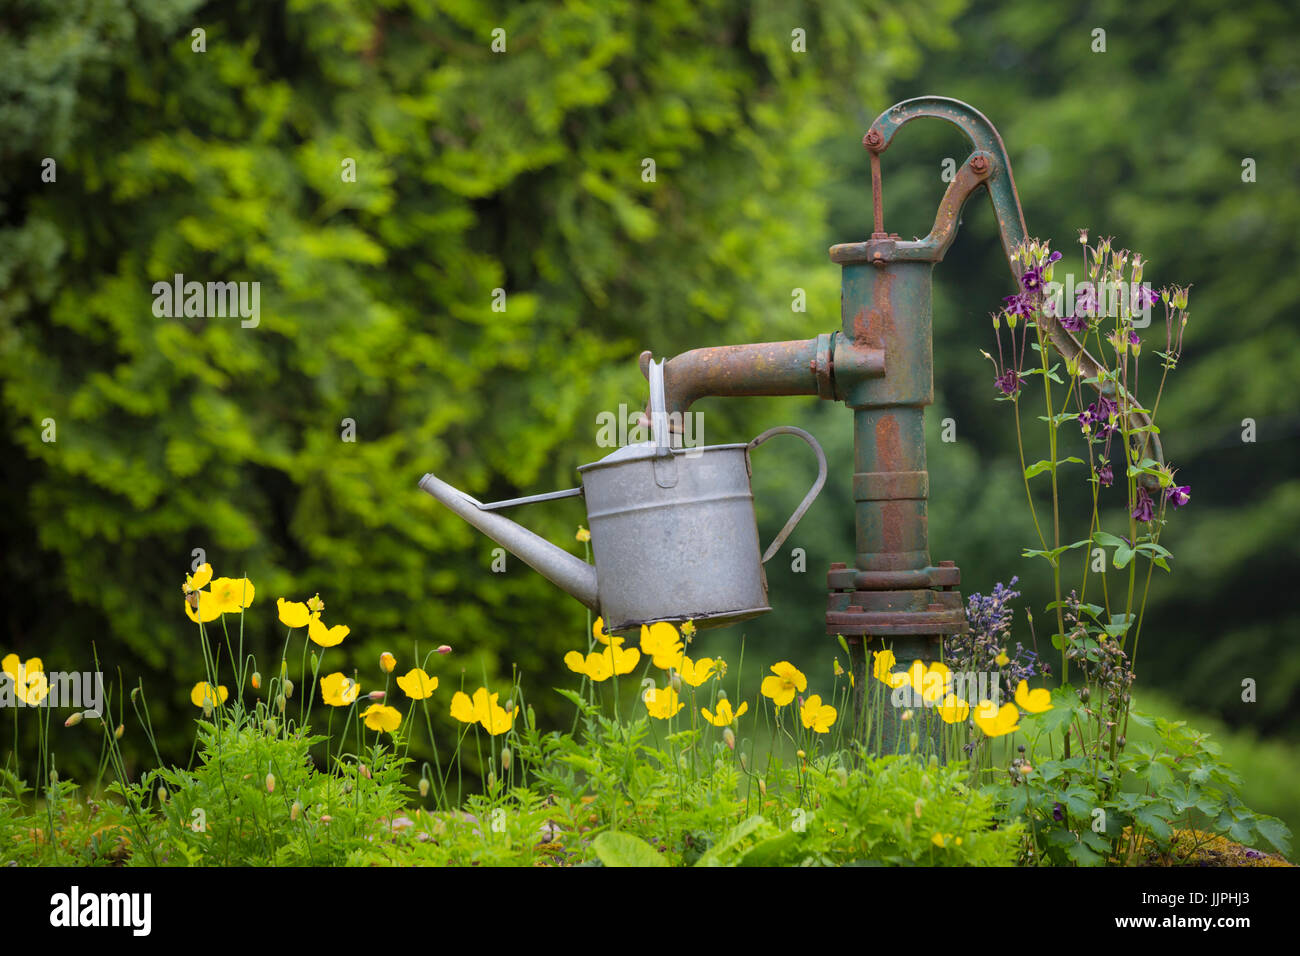 Water pump and watering can. - Stock Image